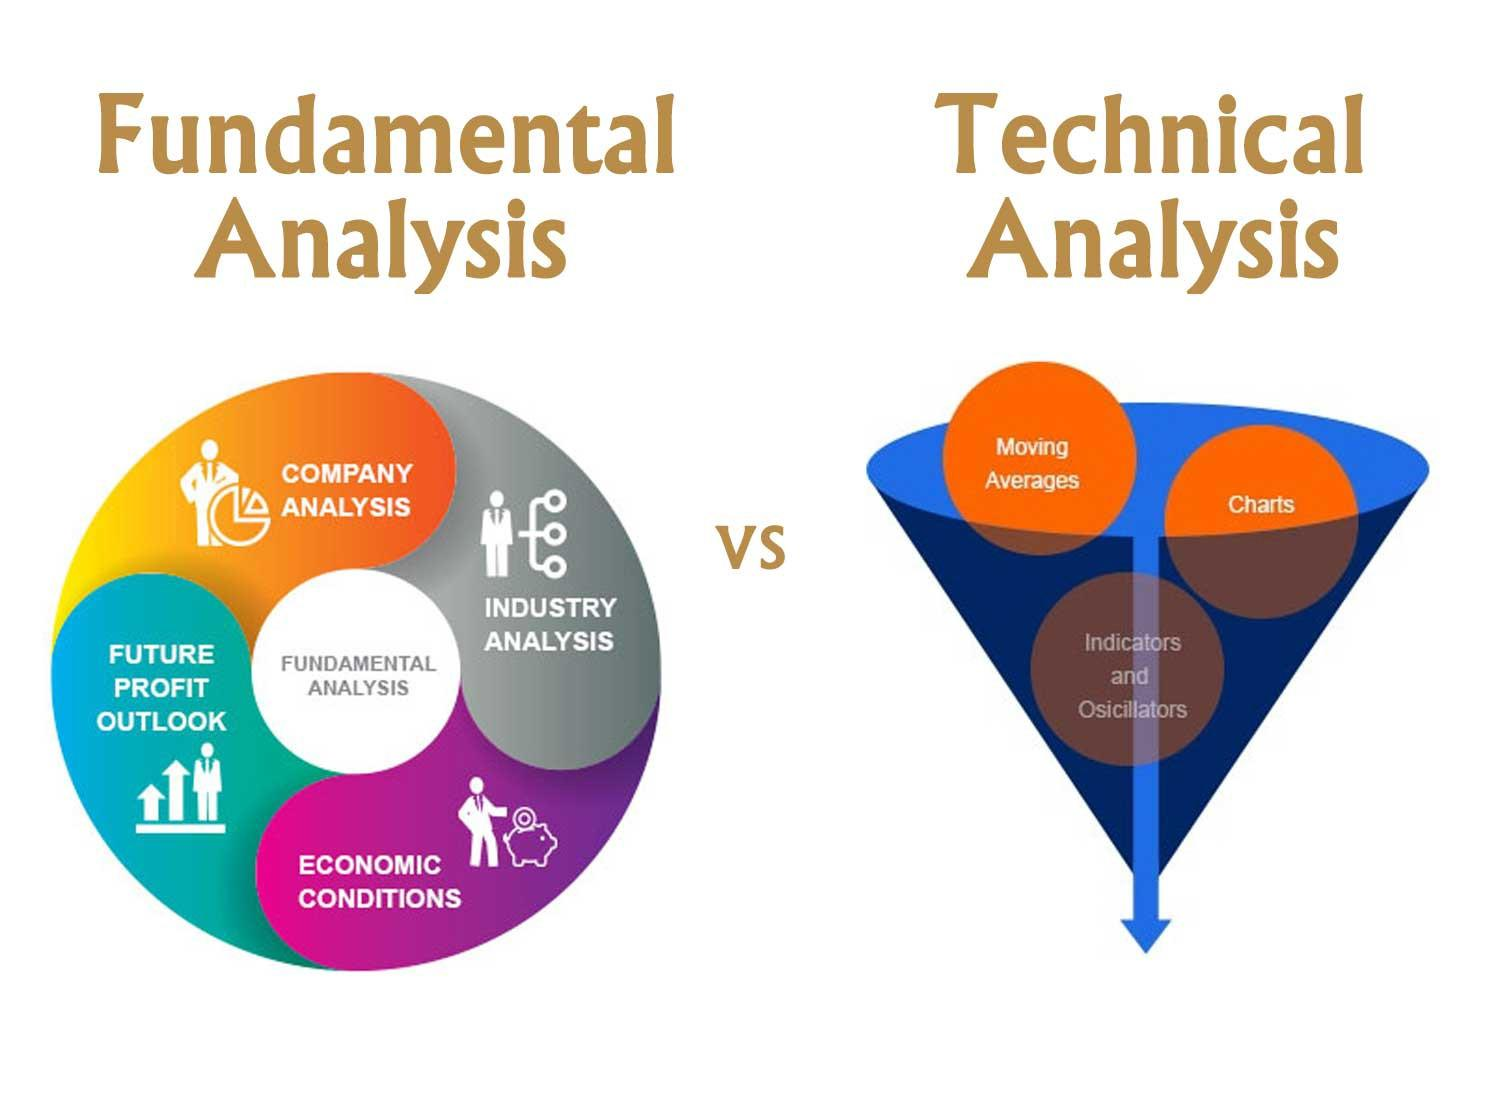 fundamental analysis vs technical analysis infographic